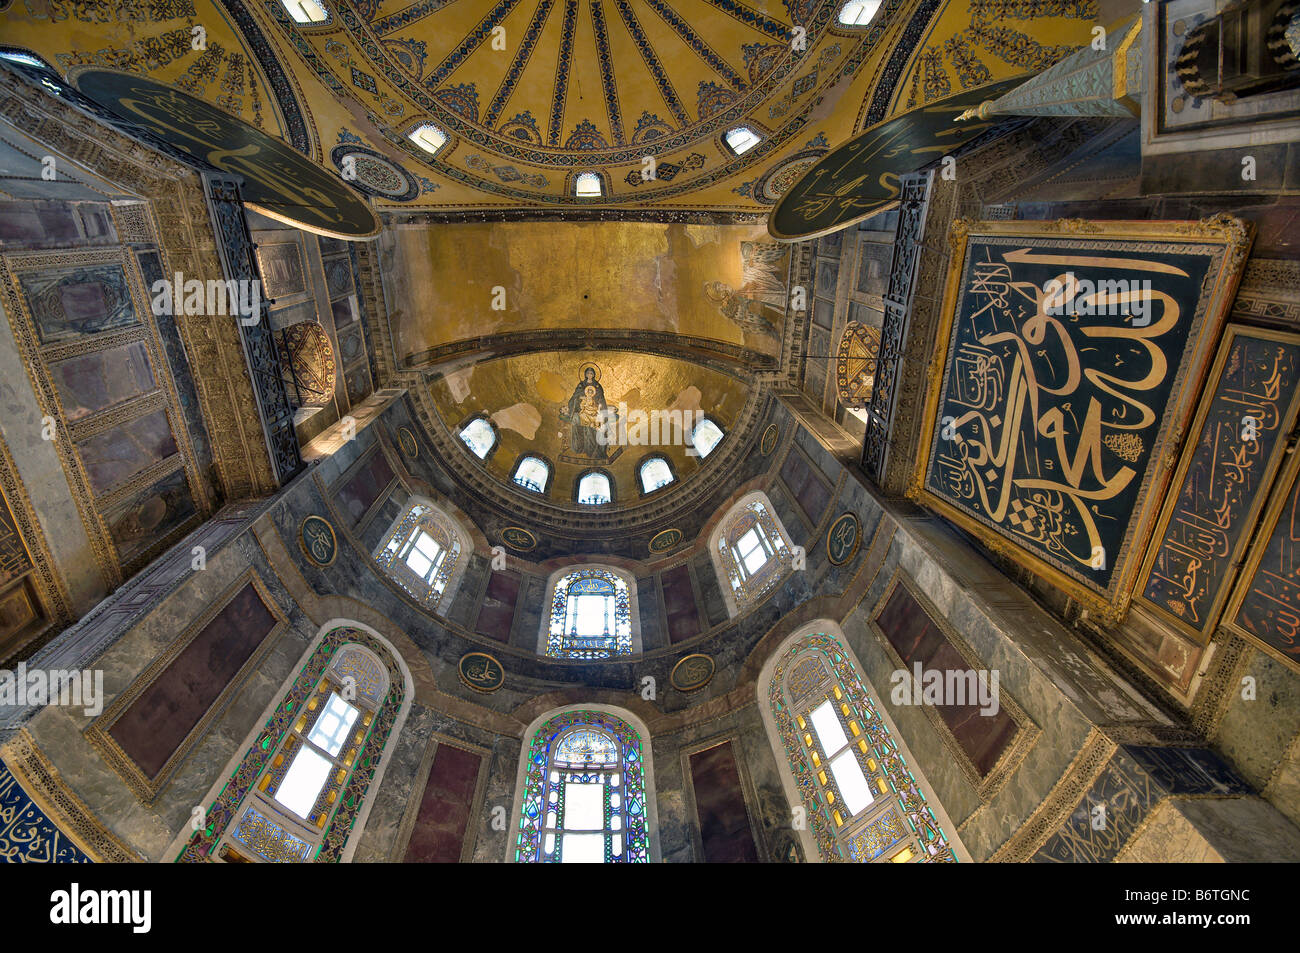 Interior View Of The Hagia Sophia Apse Mosaic Of The Theotokos Stock Photo Royalty Free Image